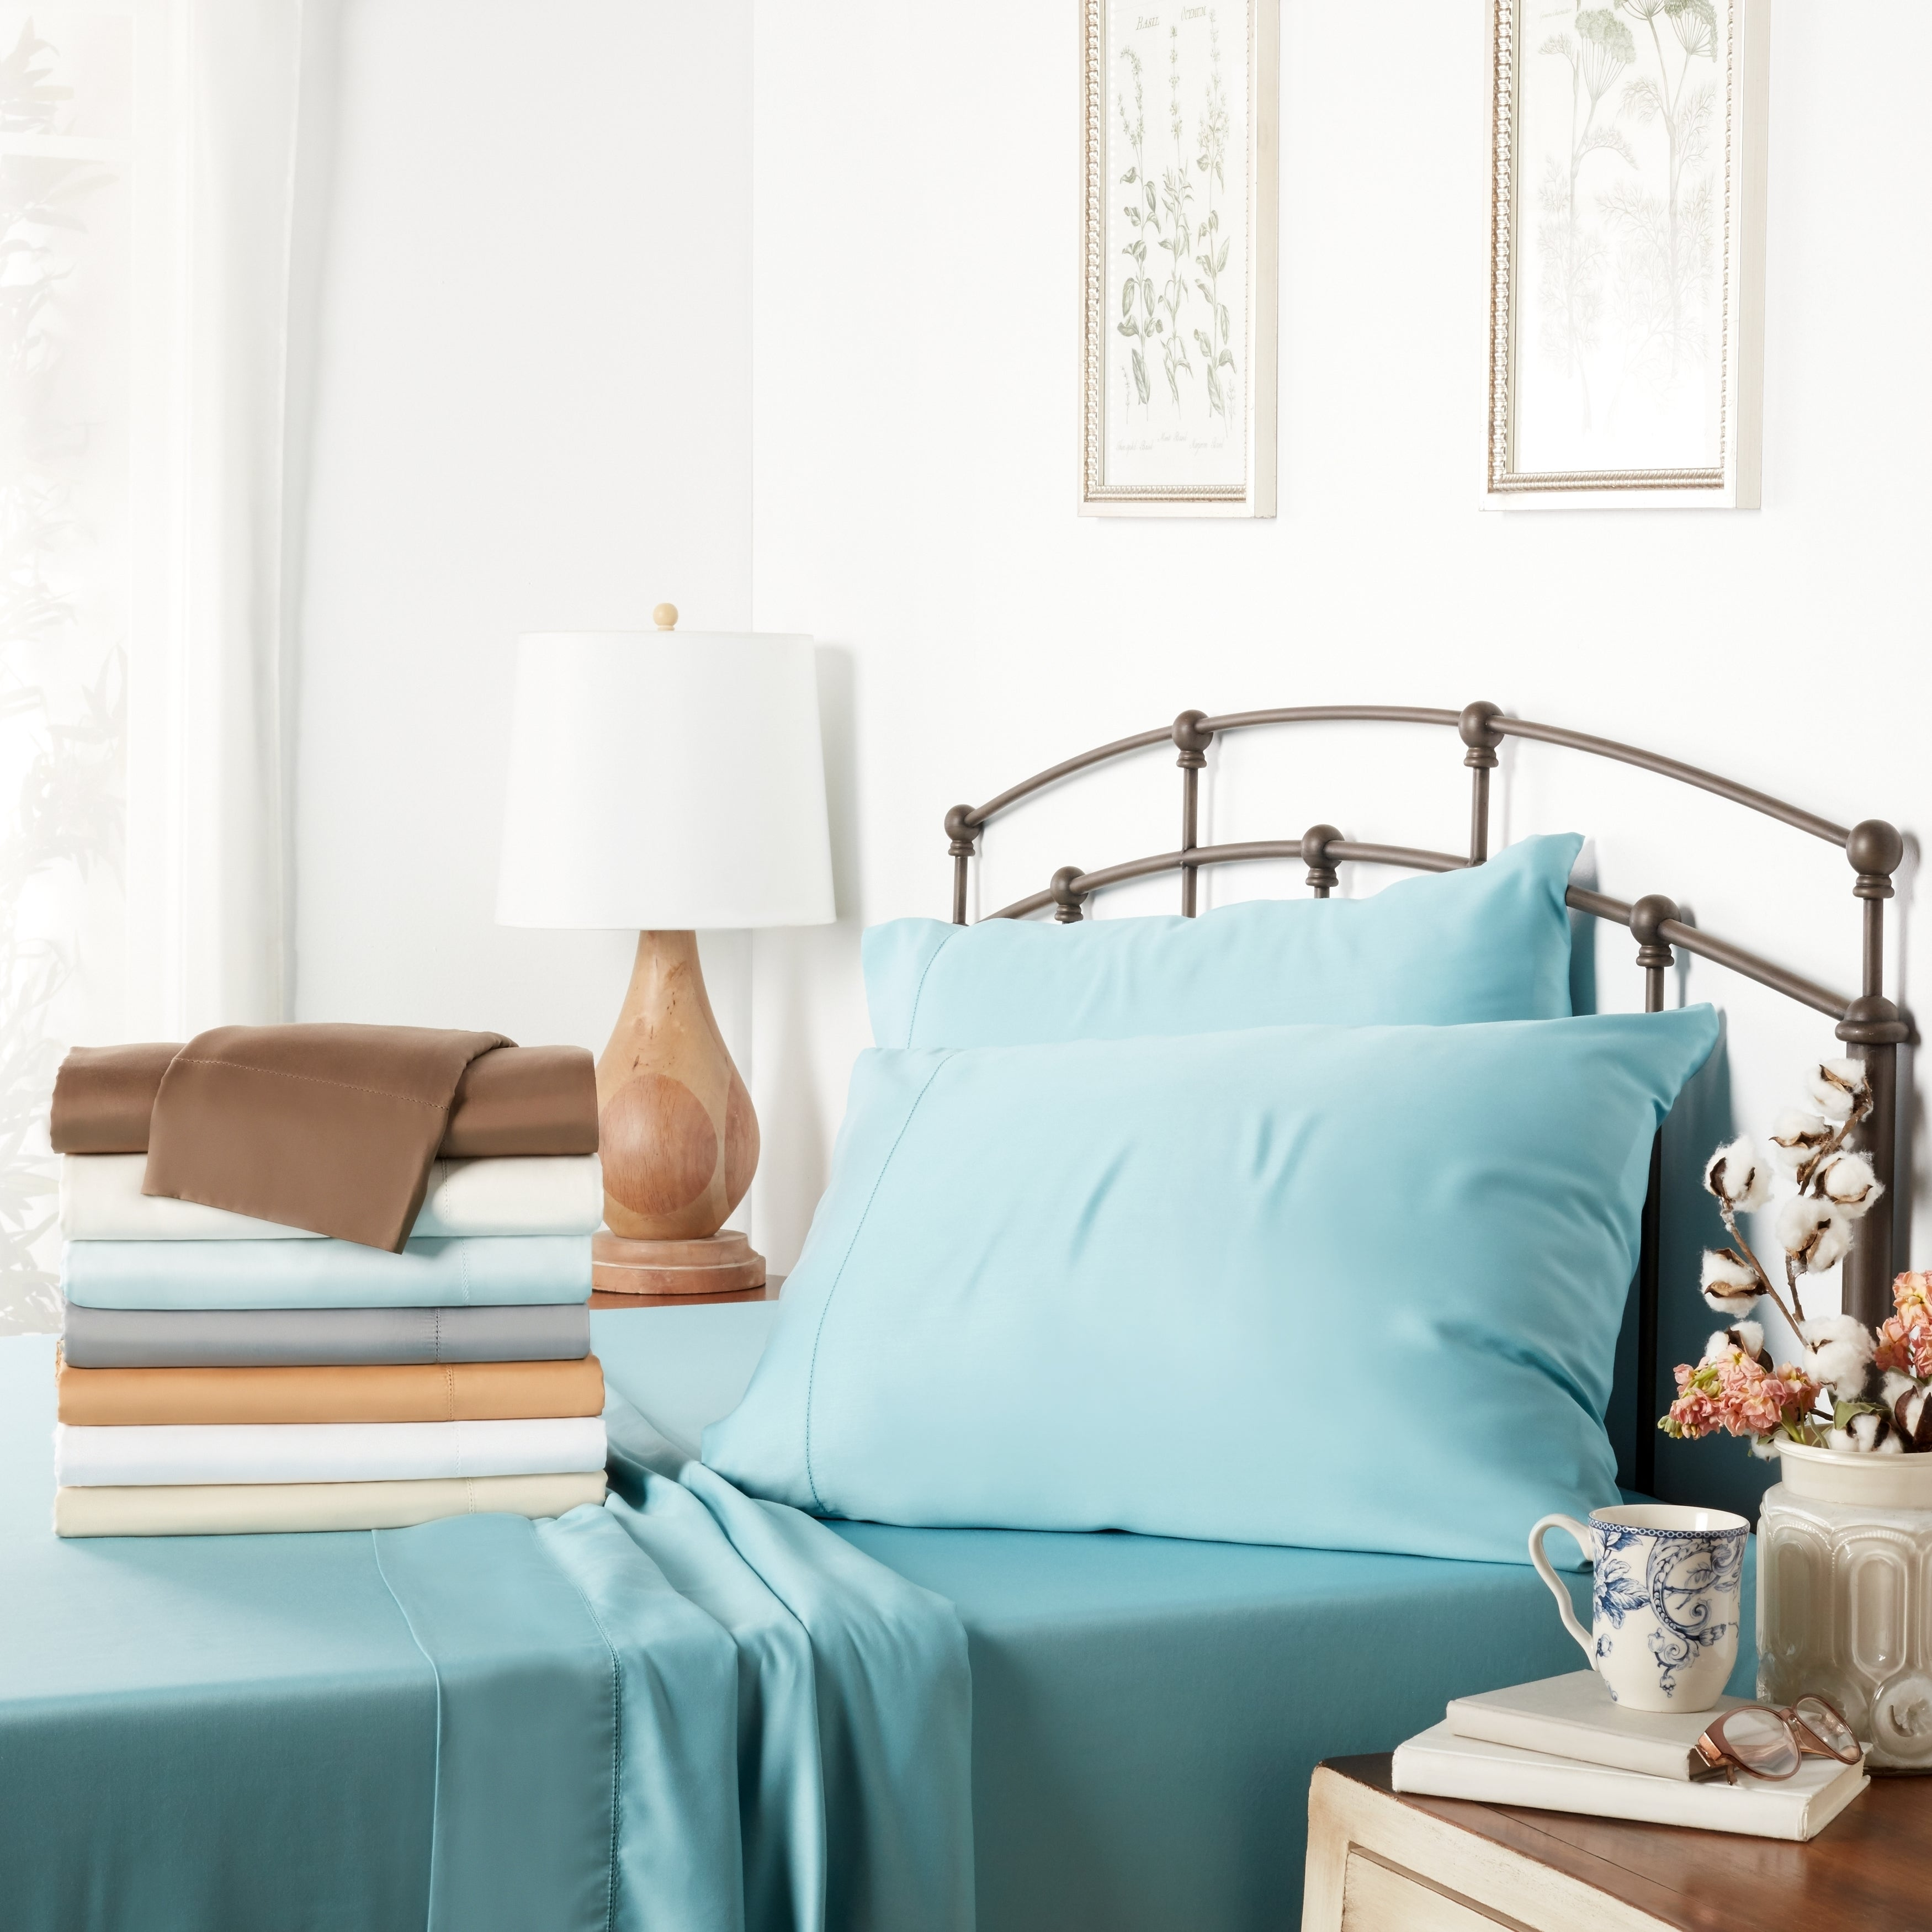 sheets company bedding home set print beautiful sets products bamboo manufacturer bed wholesaler